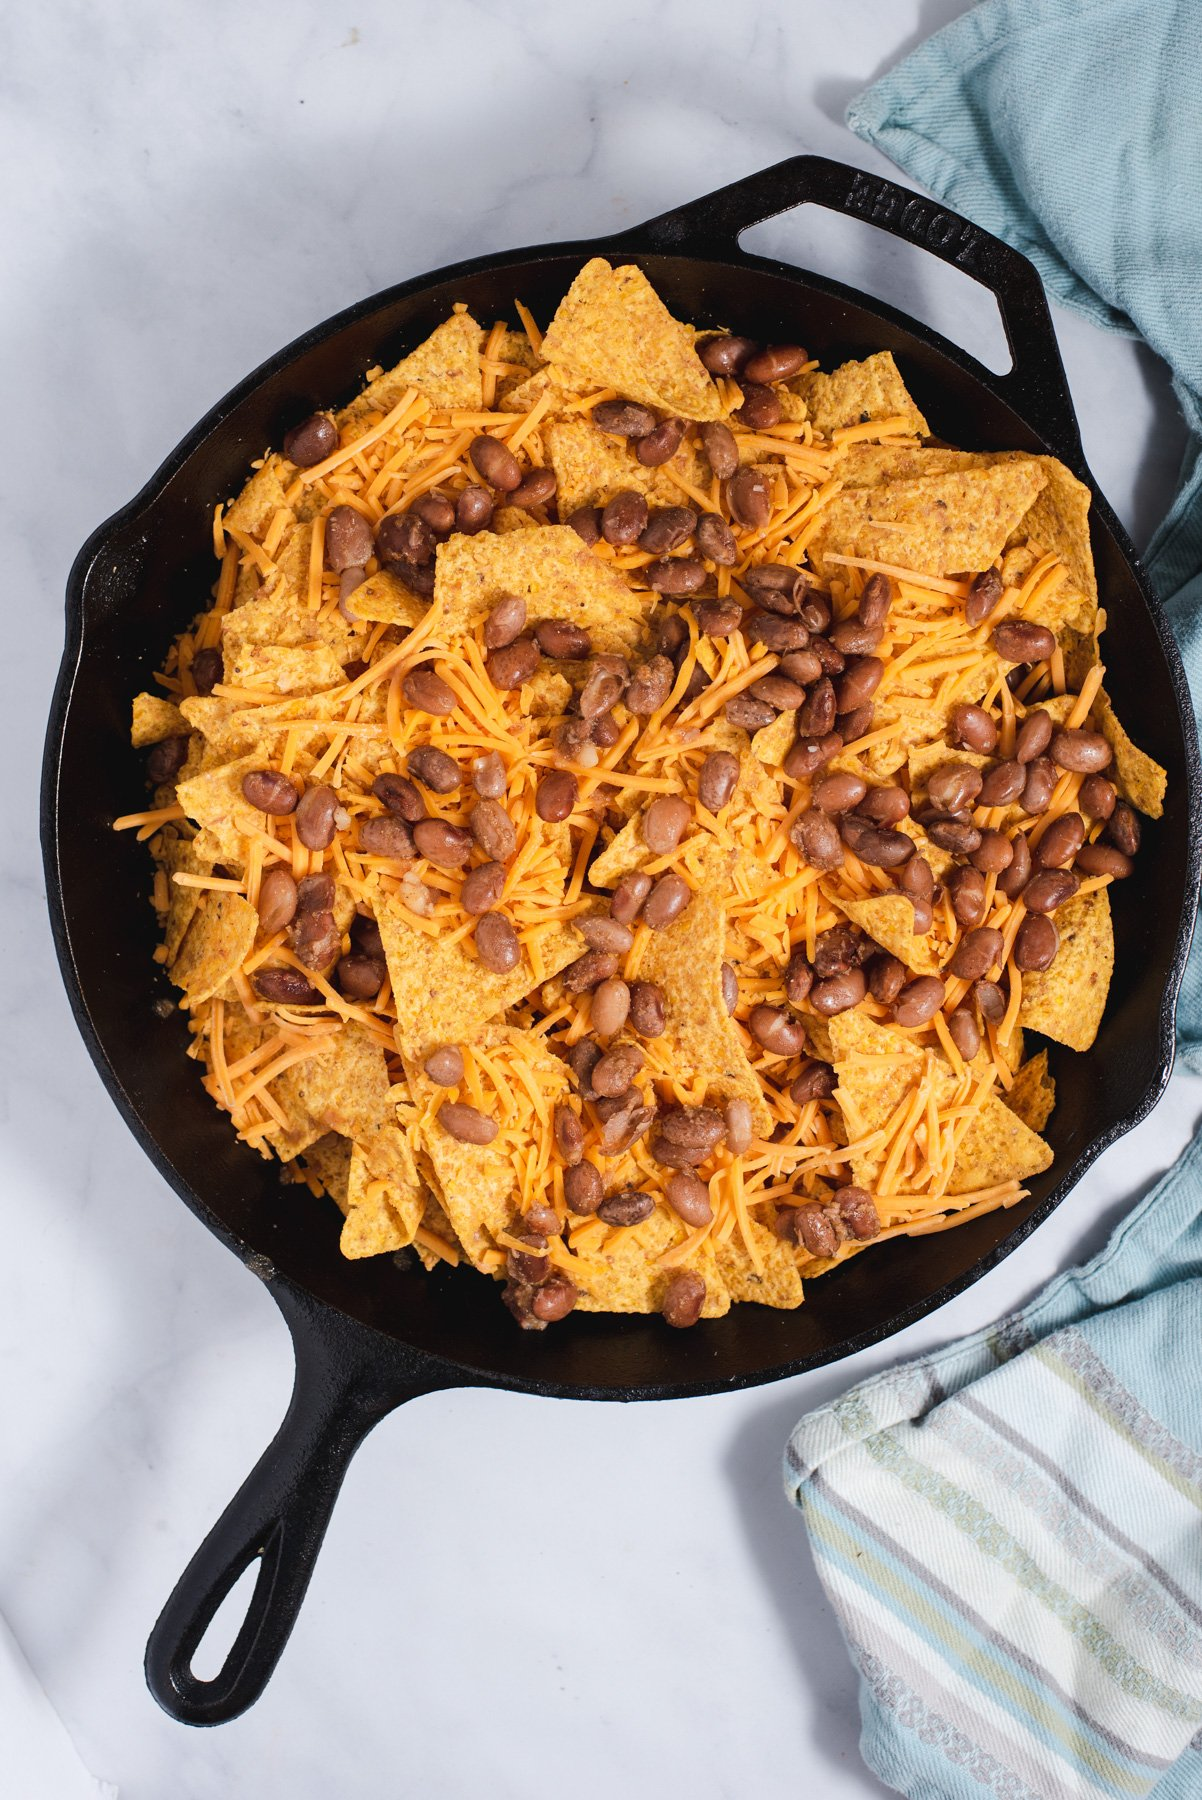 Tortilla chips with shredded cheese and pinto beans in cast iron pan